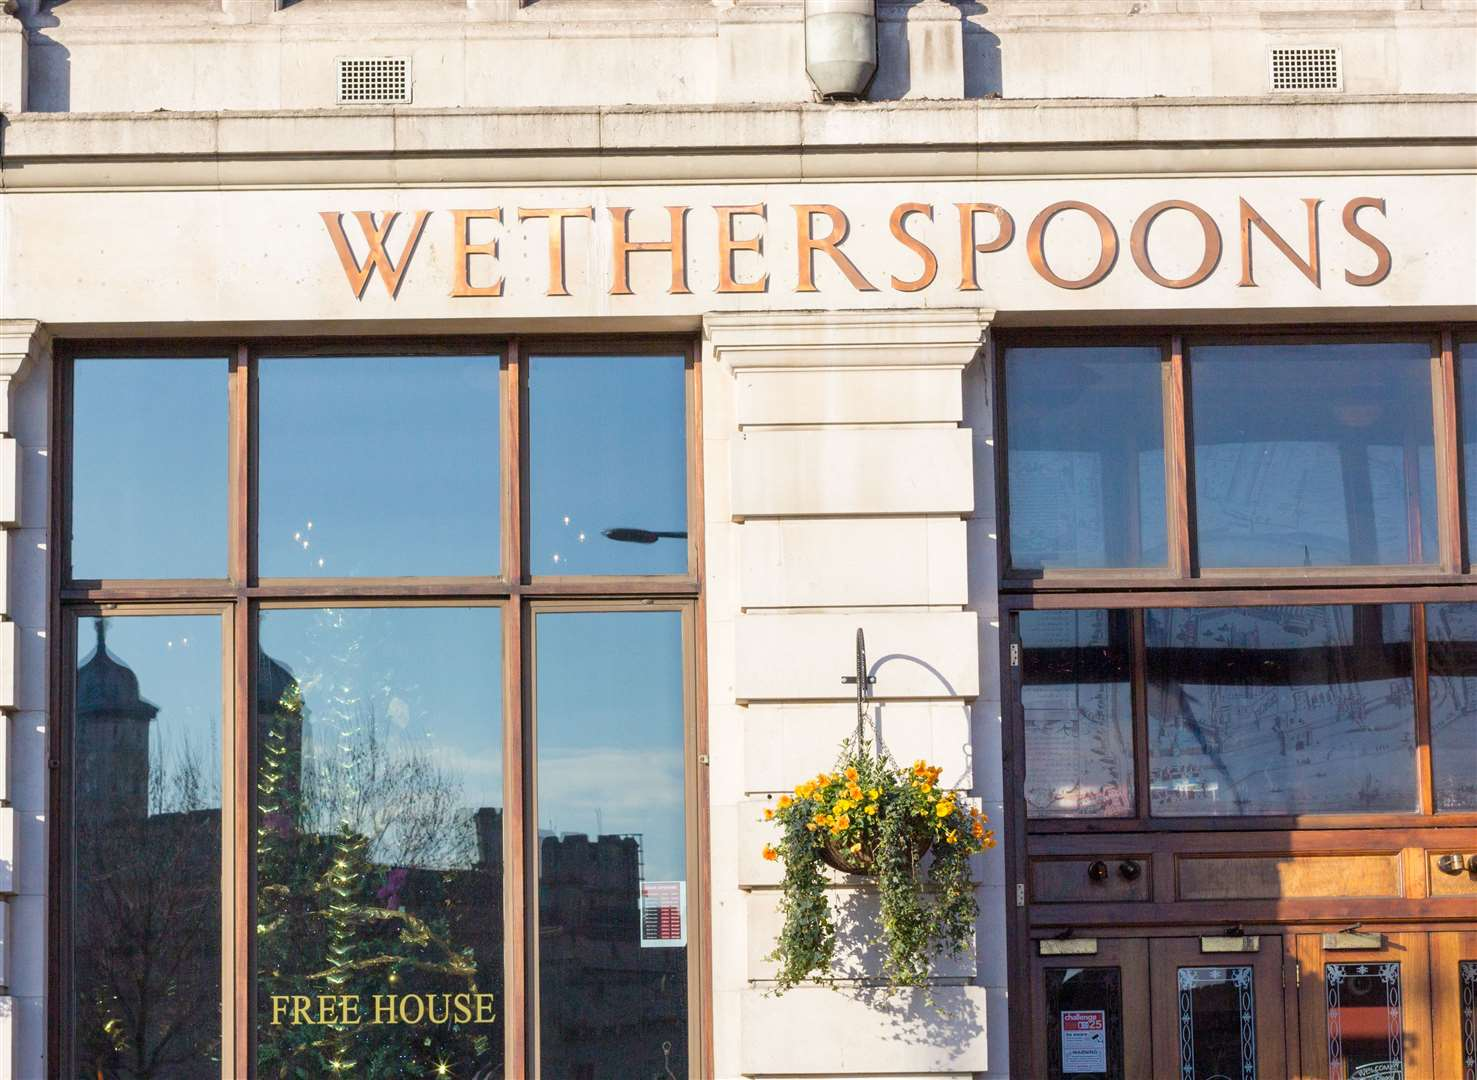 There are more than 800 Wetherspoons throughout the UK